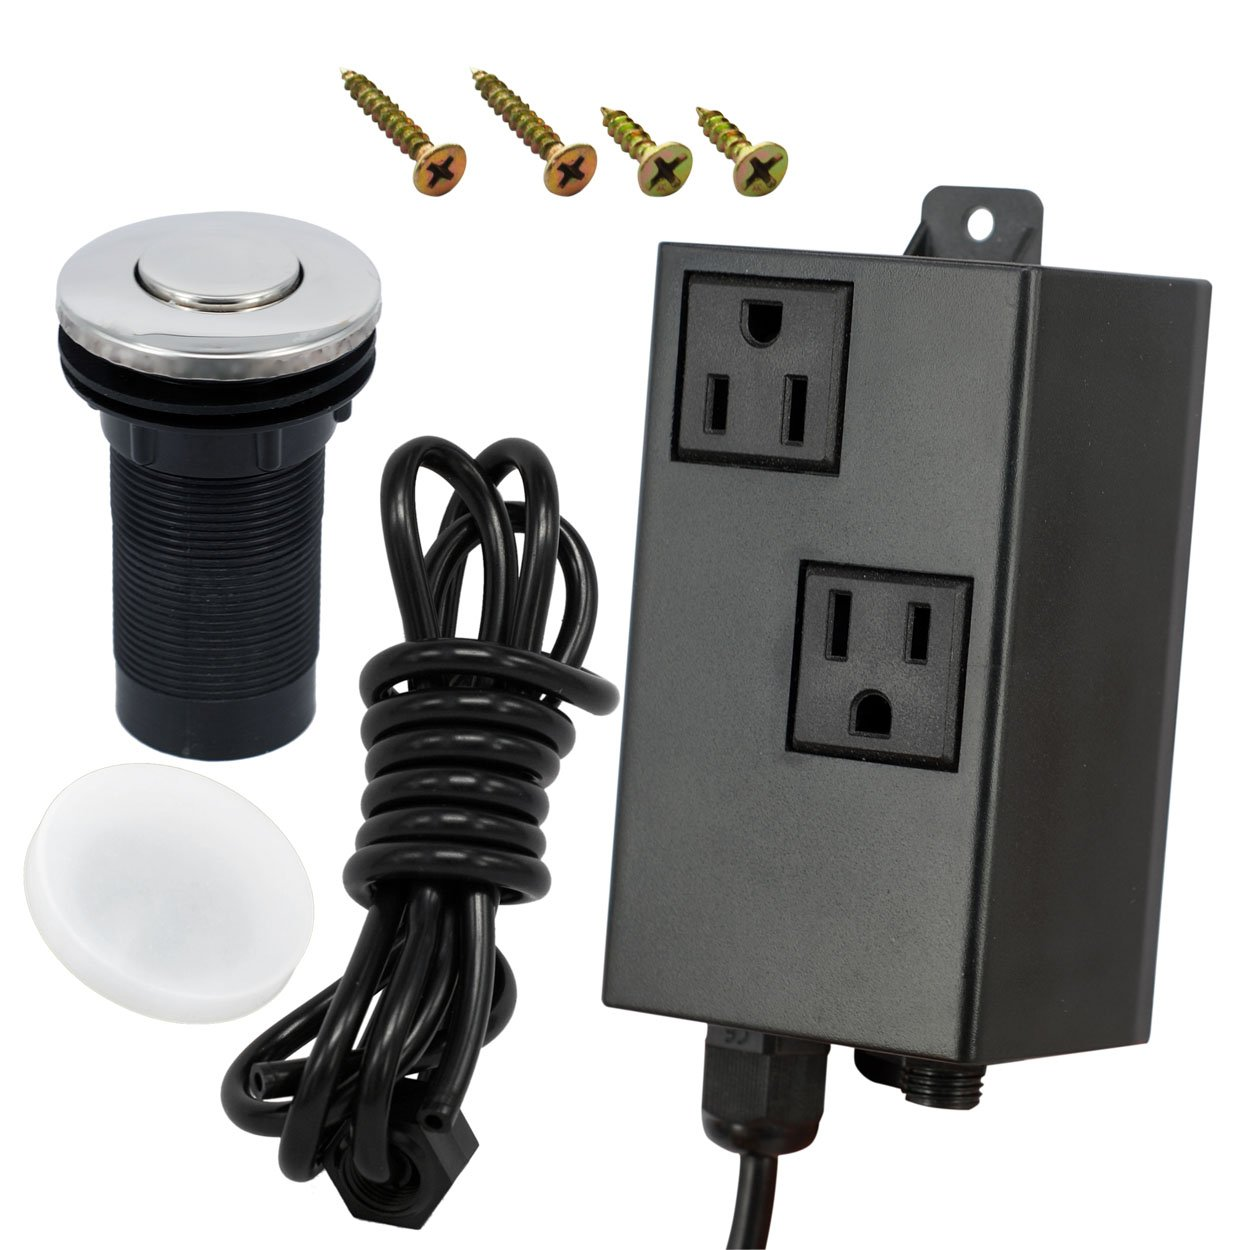 DIKOO Dual Outlet Garbage Disposal Air Switch Kit Sink Top